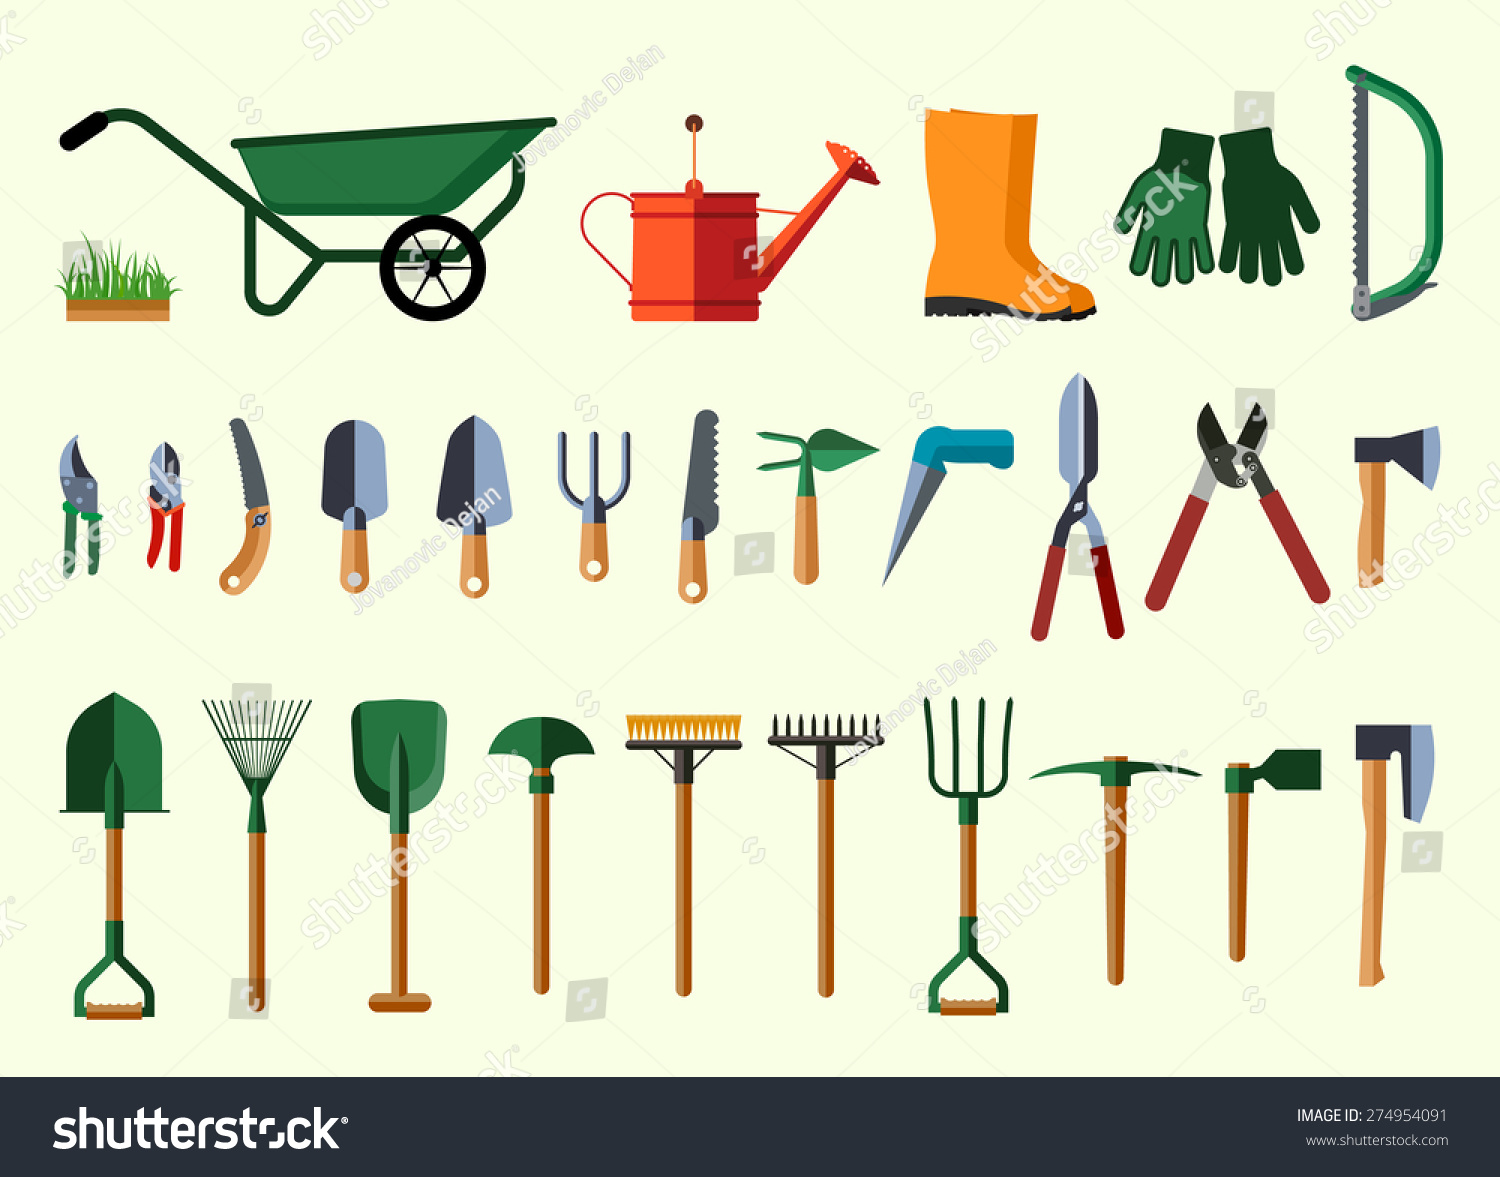 Set various gardening items garden tools stock vector for The works garden tools